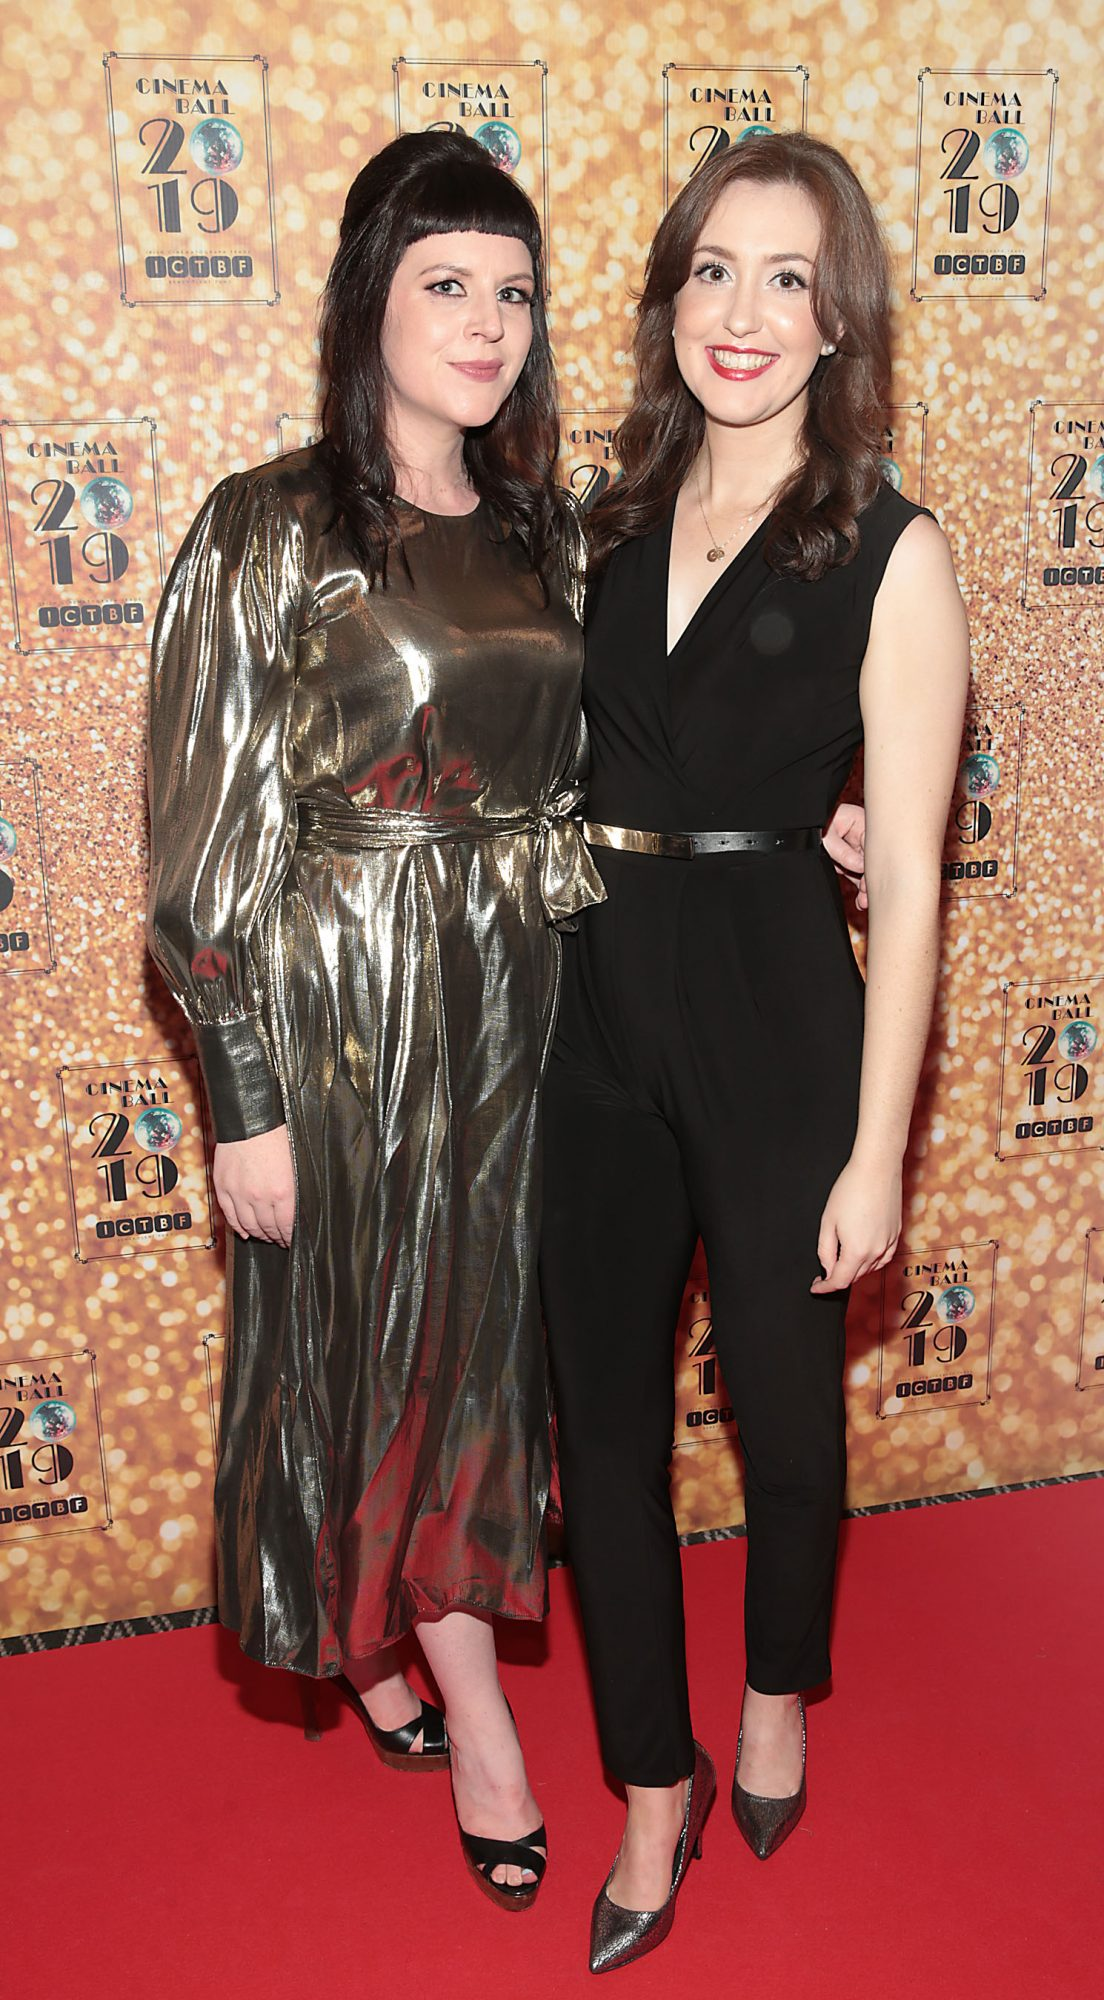 Cat Byrne and Alma Mannion  pictured at the Irish Cinema Ball 2019 in aid of the Irish Cinematograph Trade Benevolent Fund (ICTBF ) at The Shelbourne Hotel, Dublin This year's theme was the iconic 'Studio 54'. Pic: Brian McEvoy.